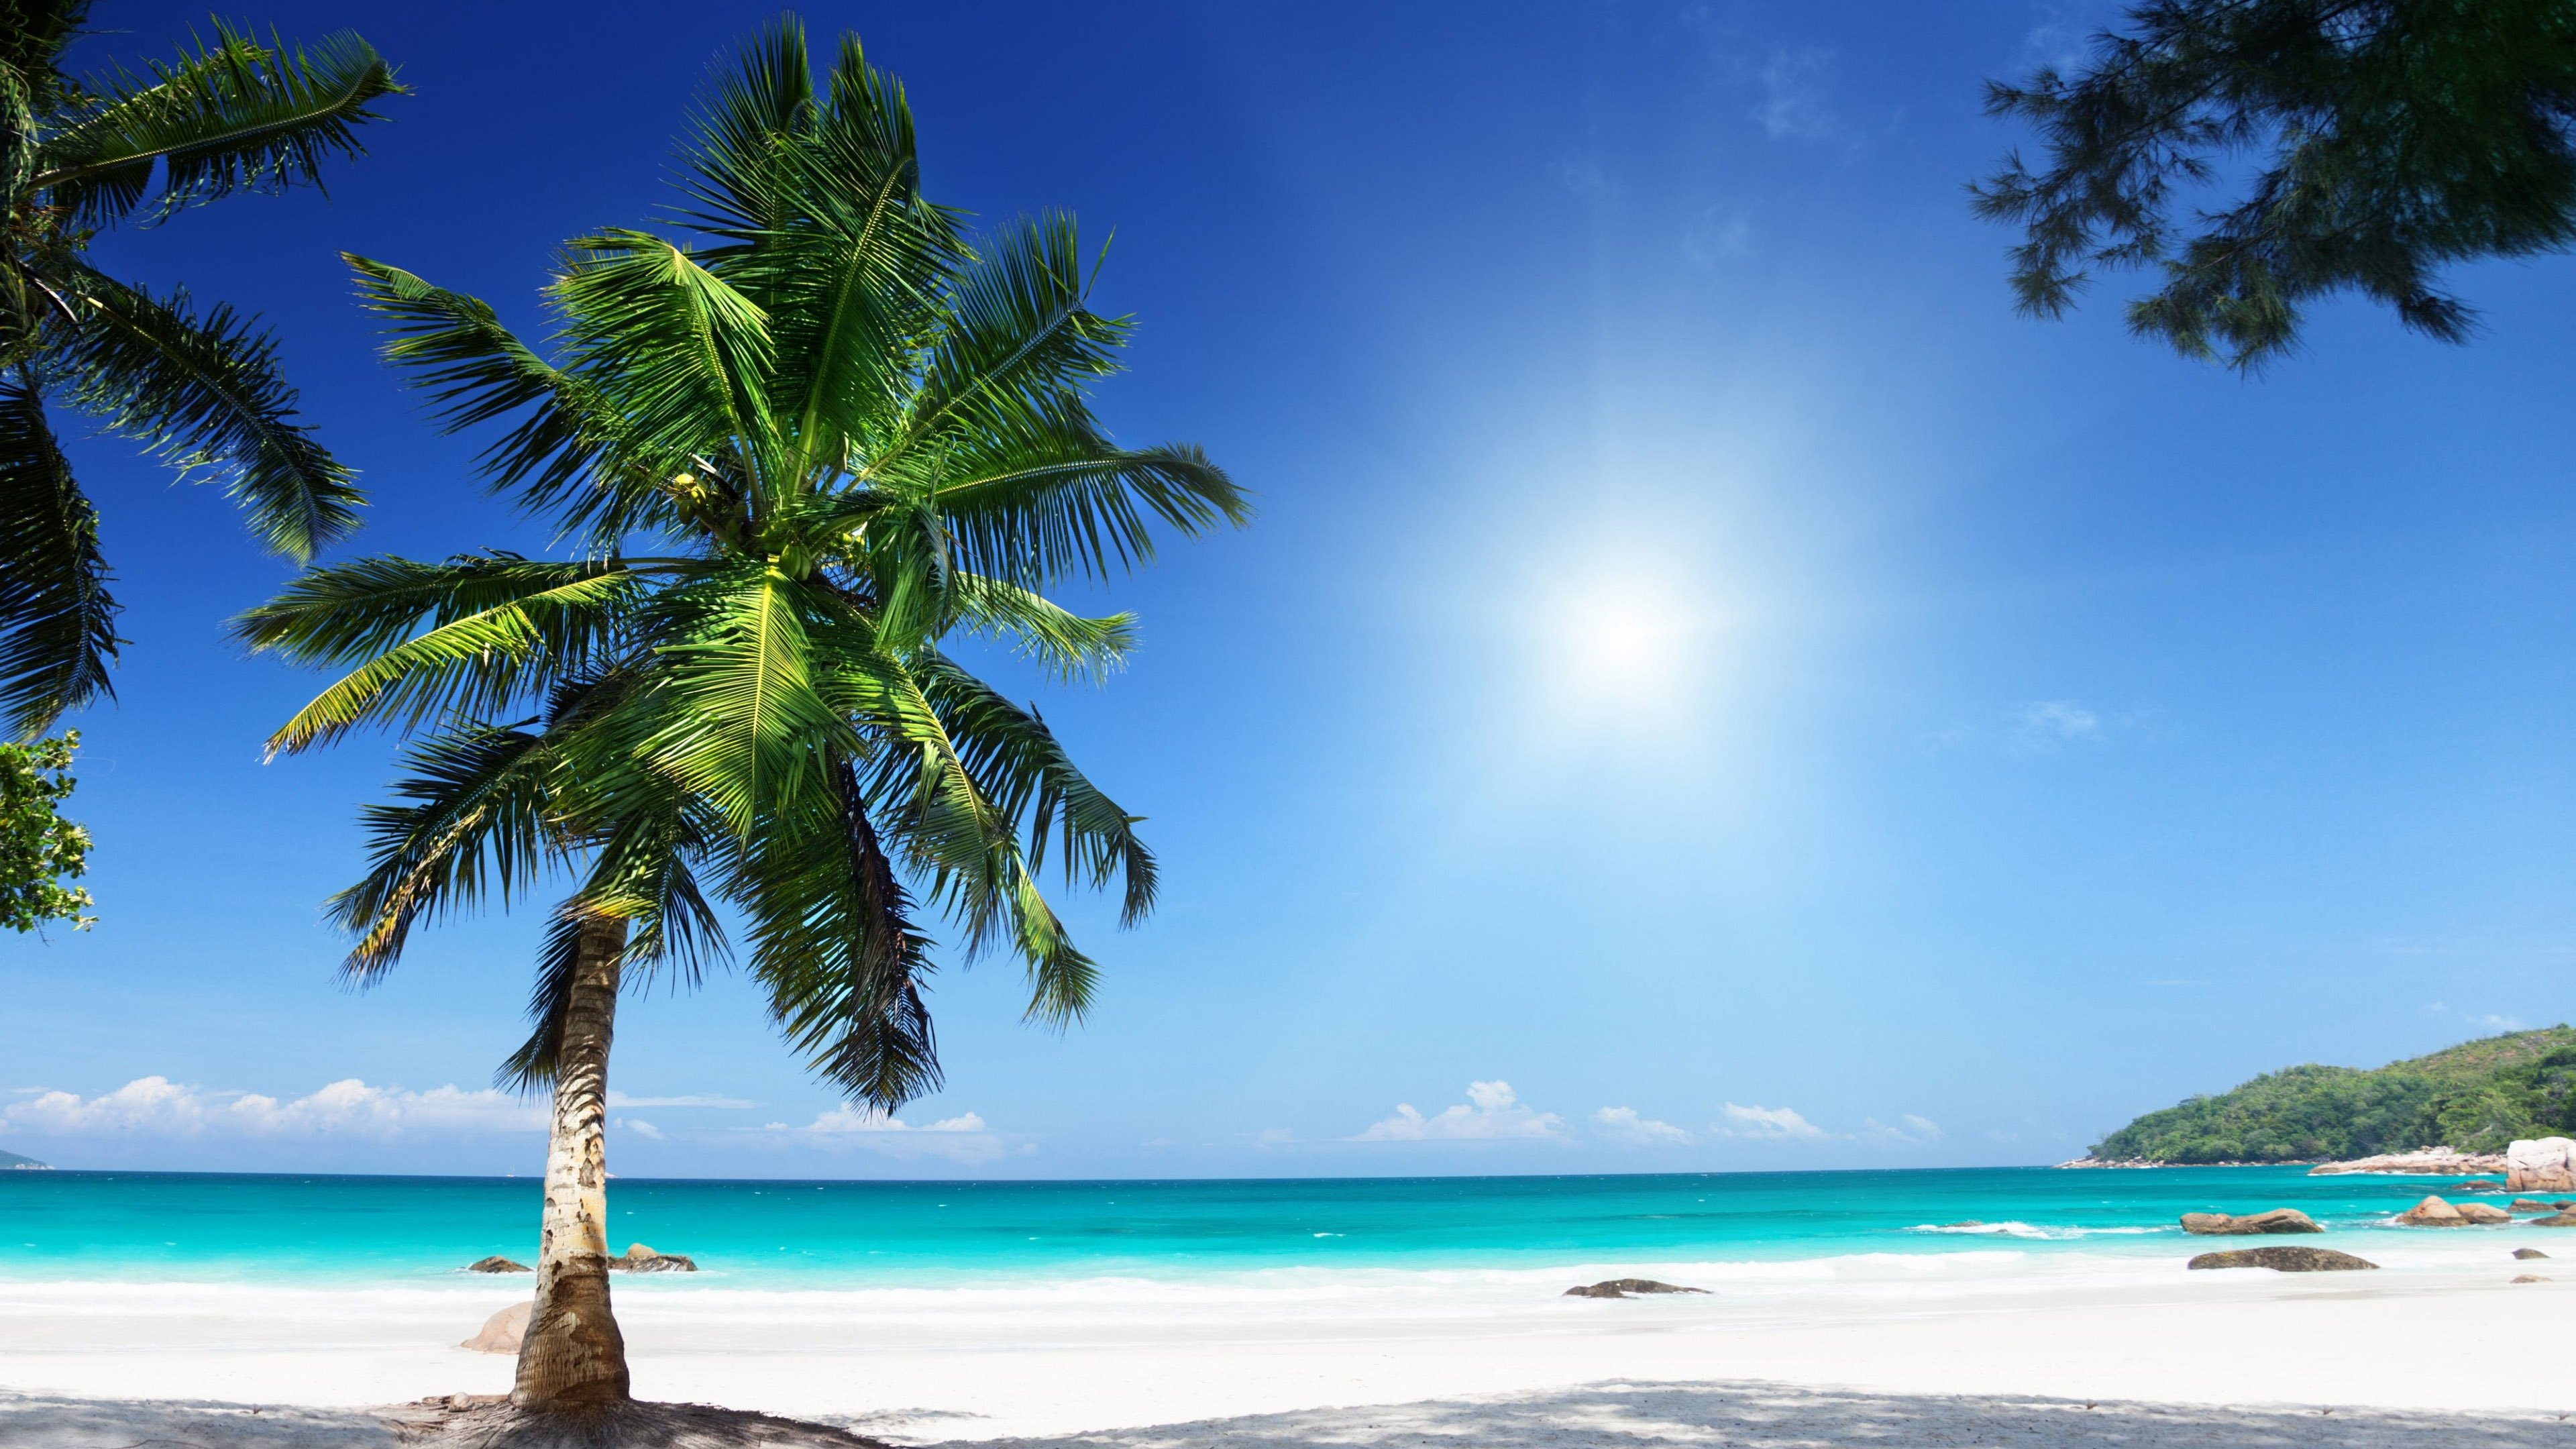 Hd Tropical Island Beach Paradise Wallpapers And Backgrounds: 3840X2160 Wallpaper